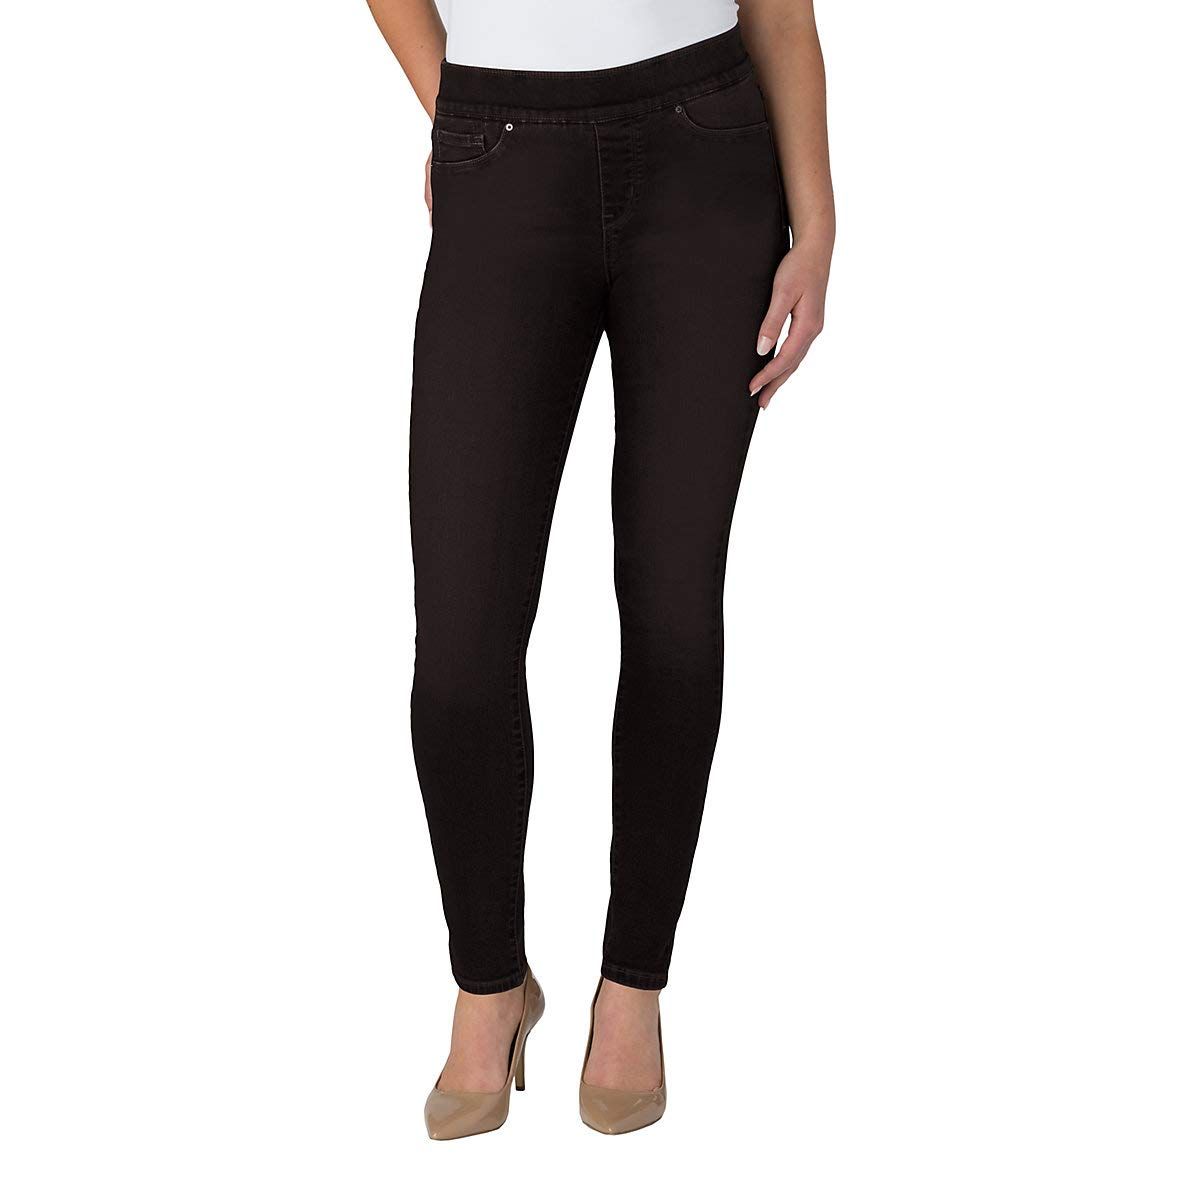 Signature by Levi Strauss & Co. Gold Label Women's Totally Shaping Pull-On Skinny Jeans, Noir, 10 Medium